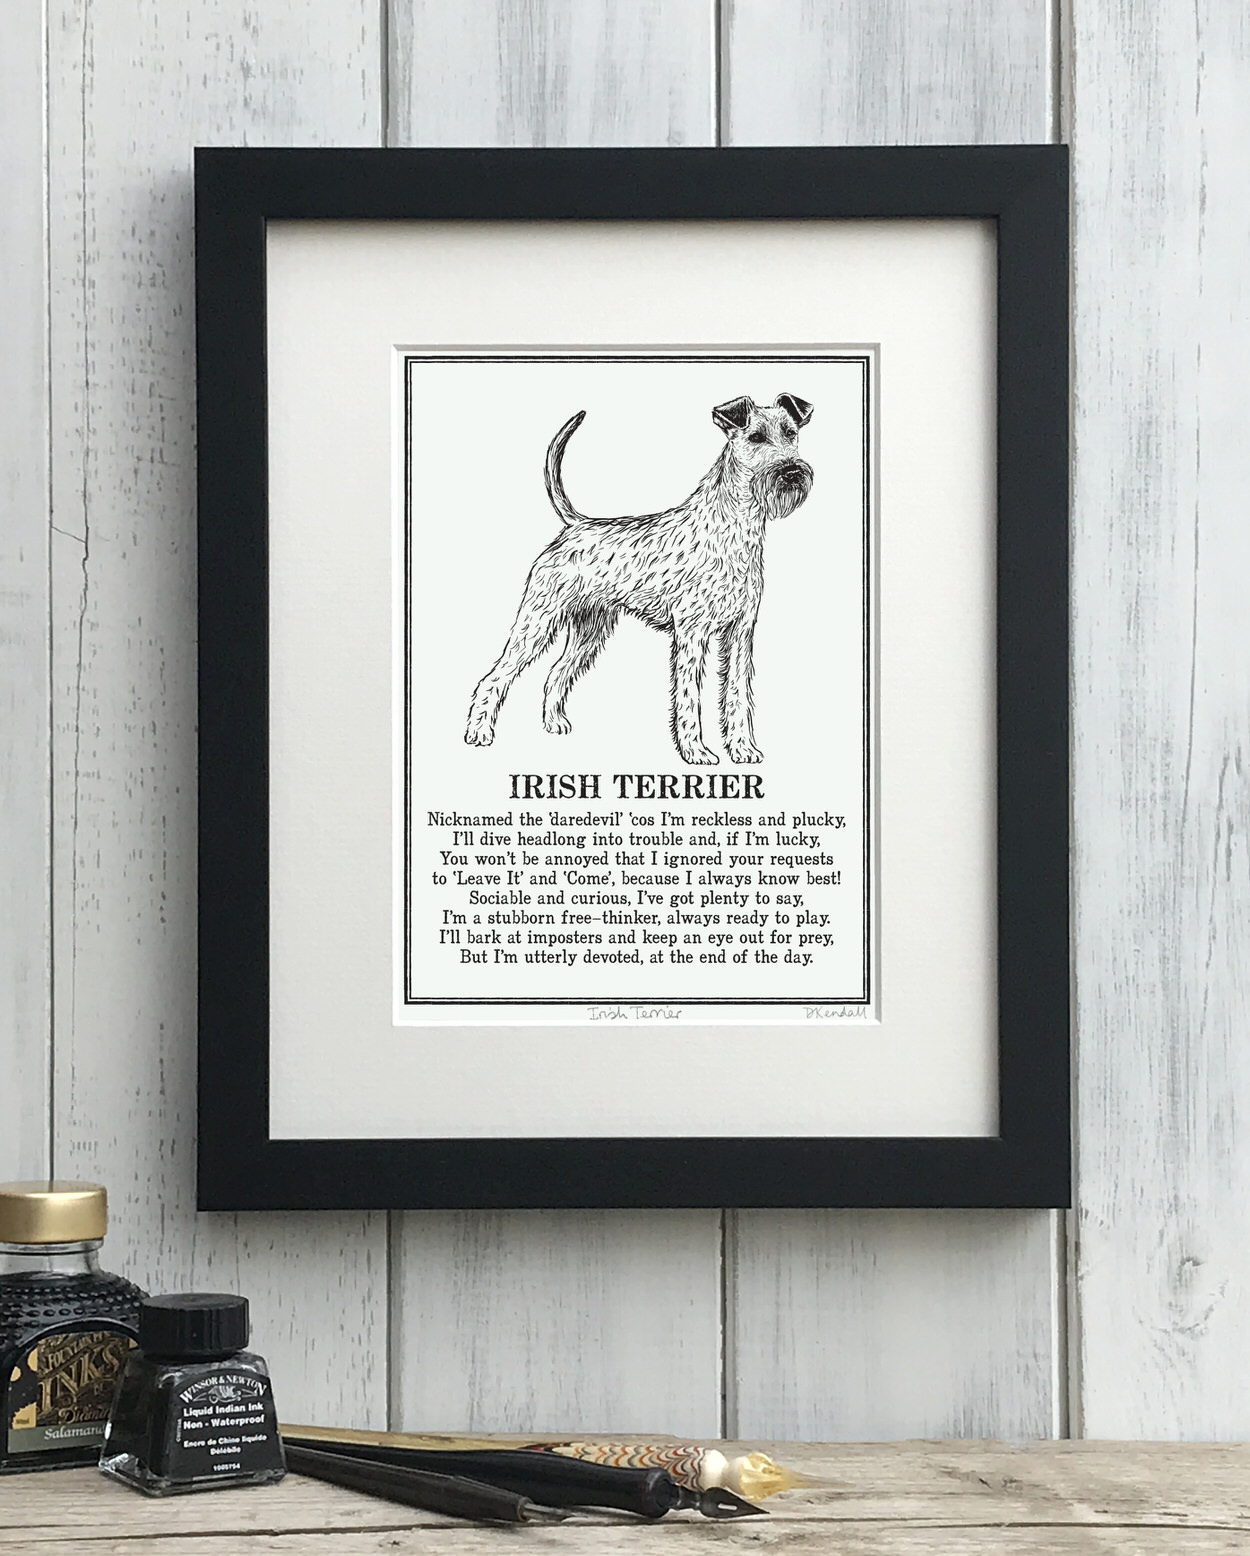 Irish Terrier print illustrated poem by The Enlightened Hound